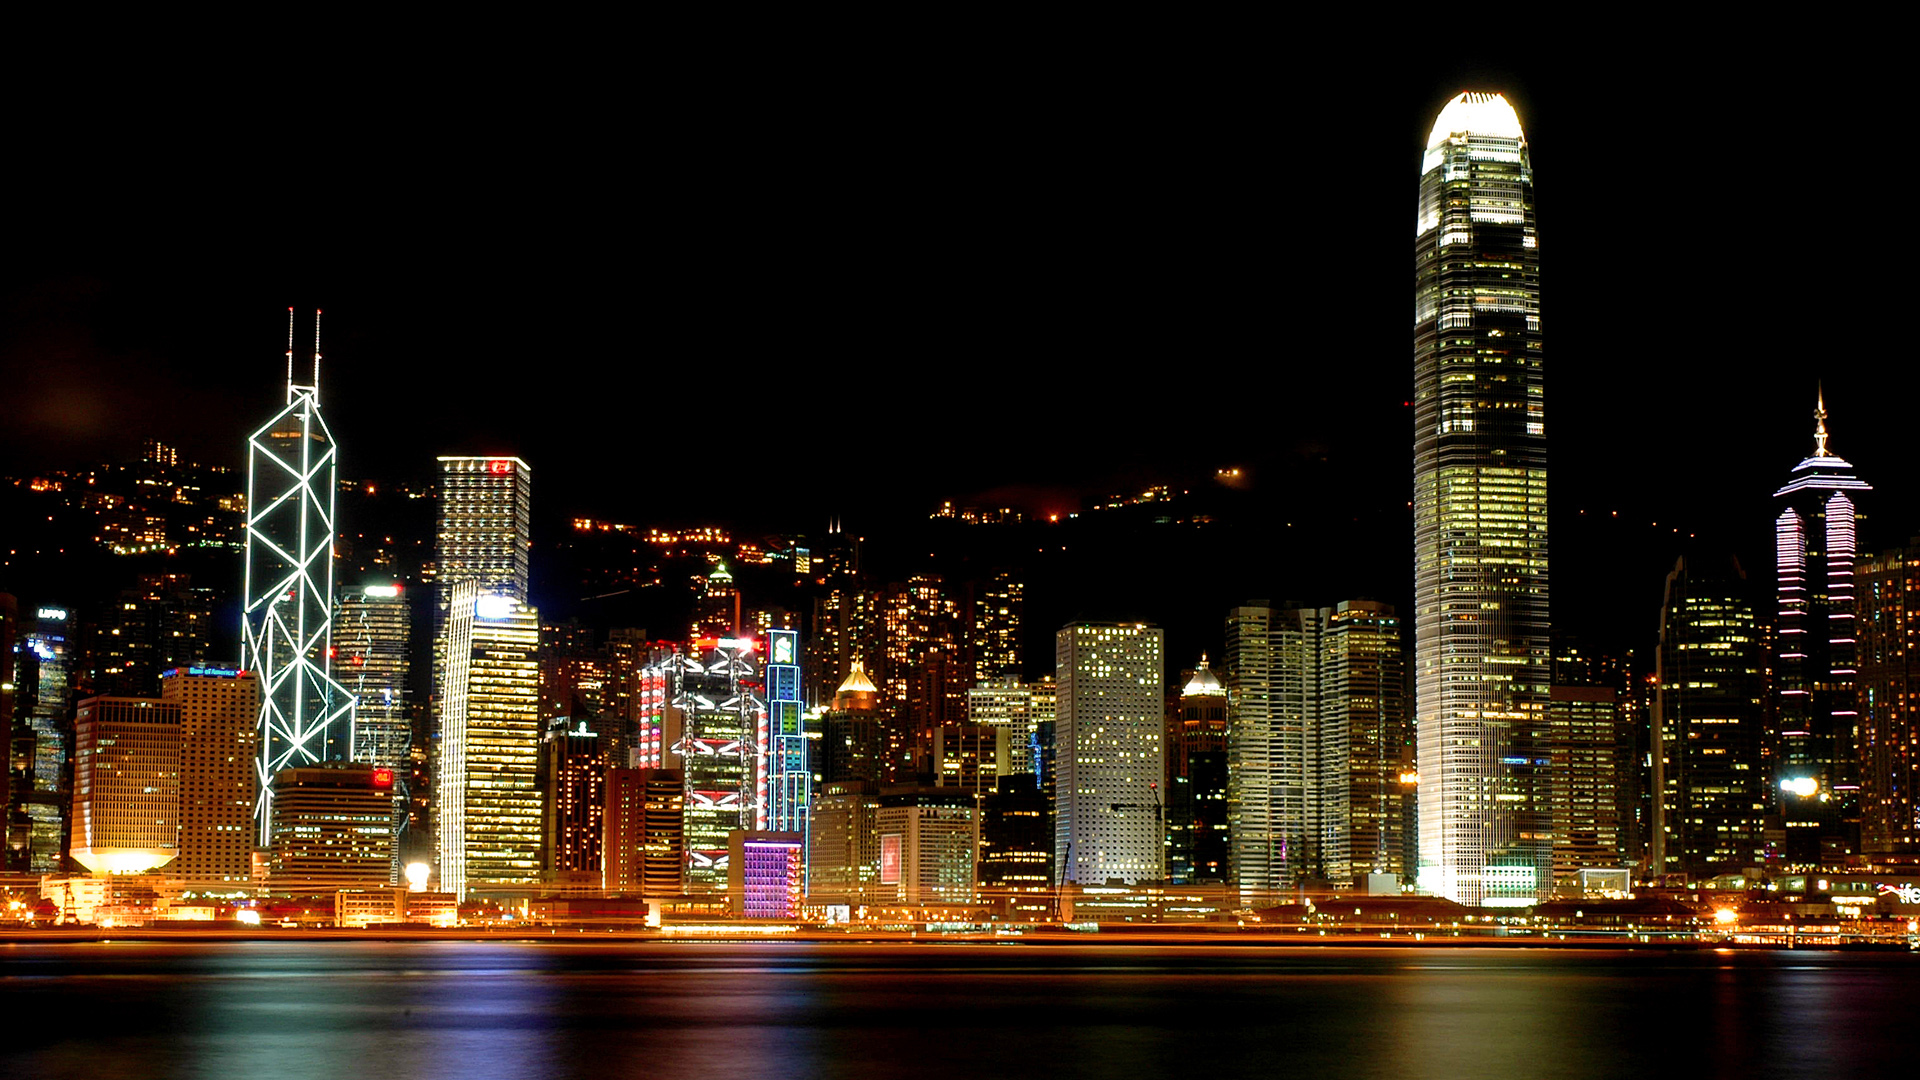 HD City Wallpaper Images For Desktop Download 1920x1080